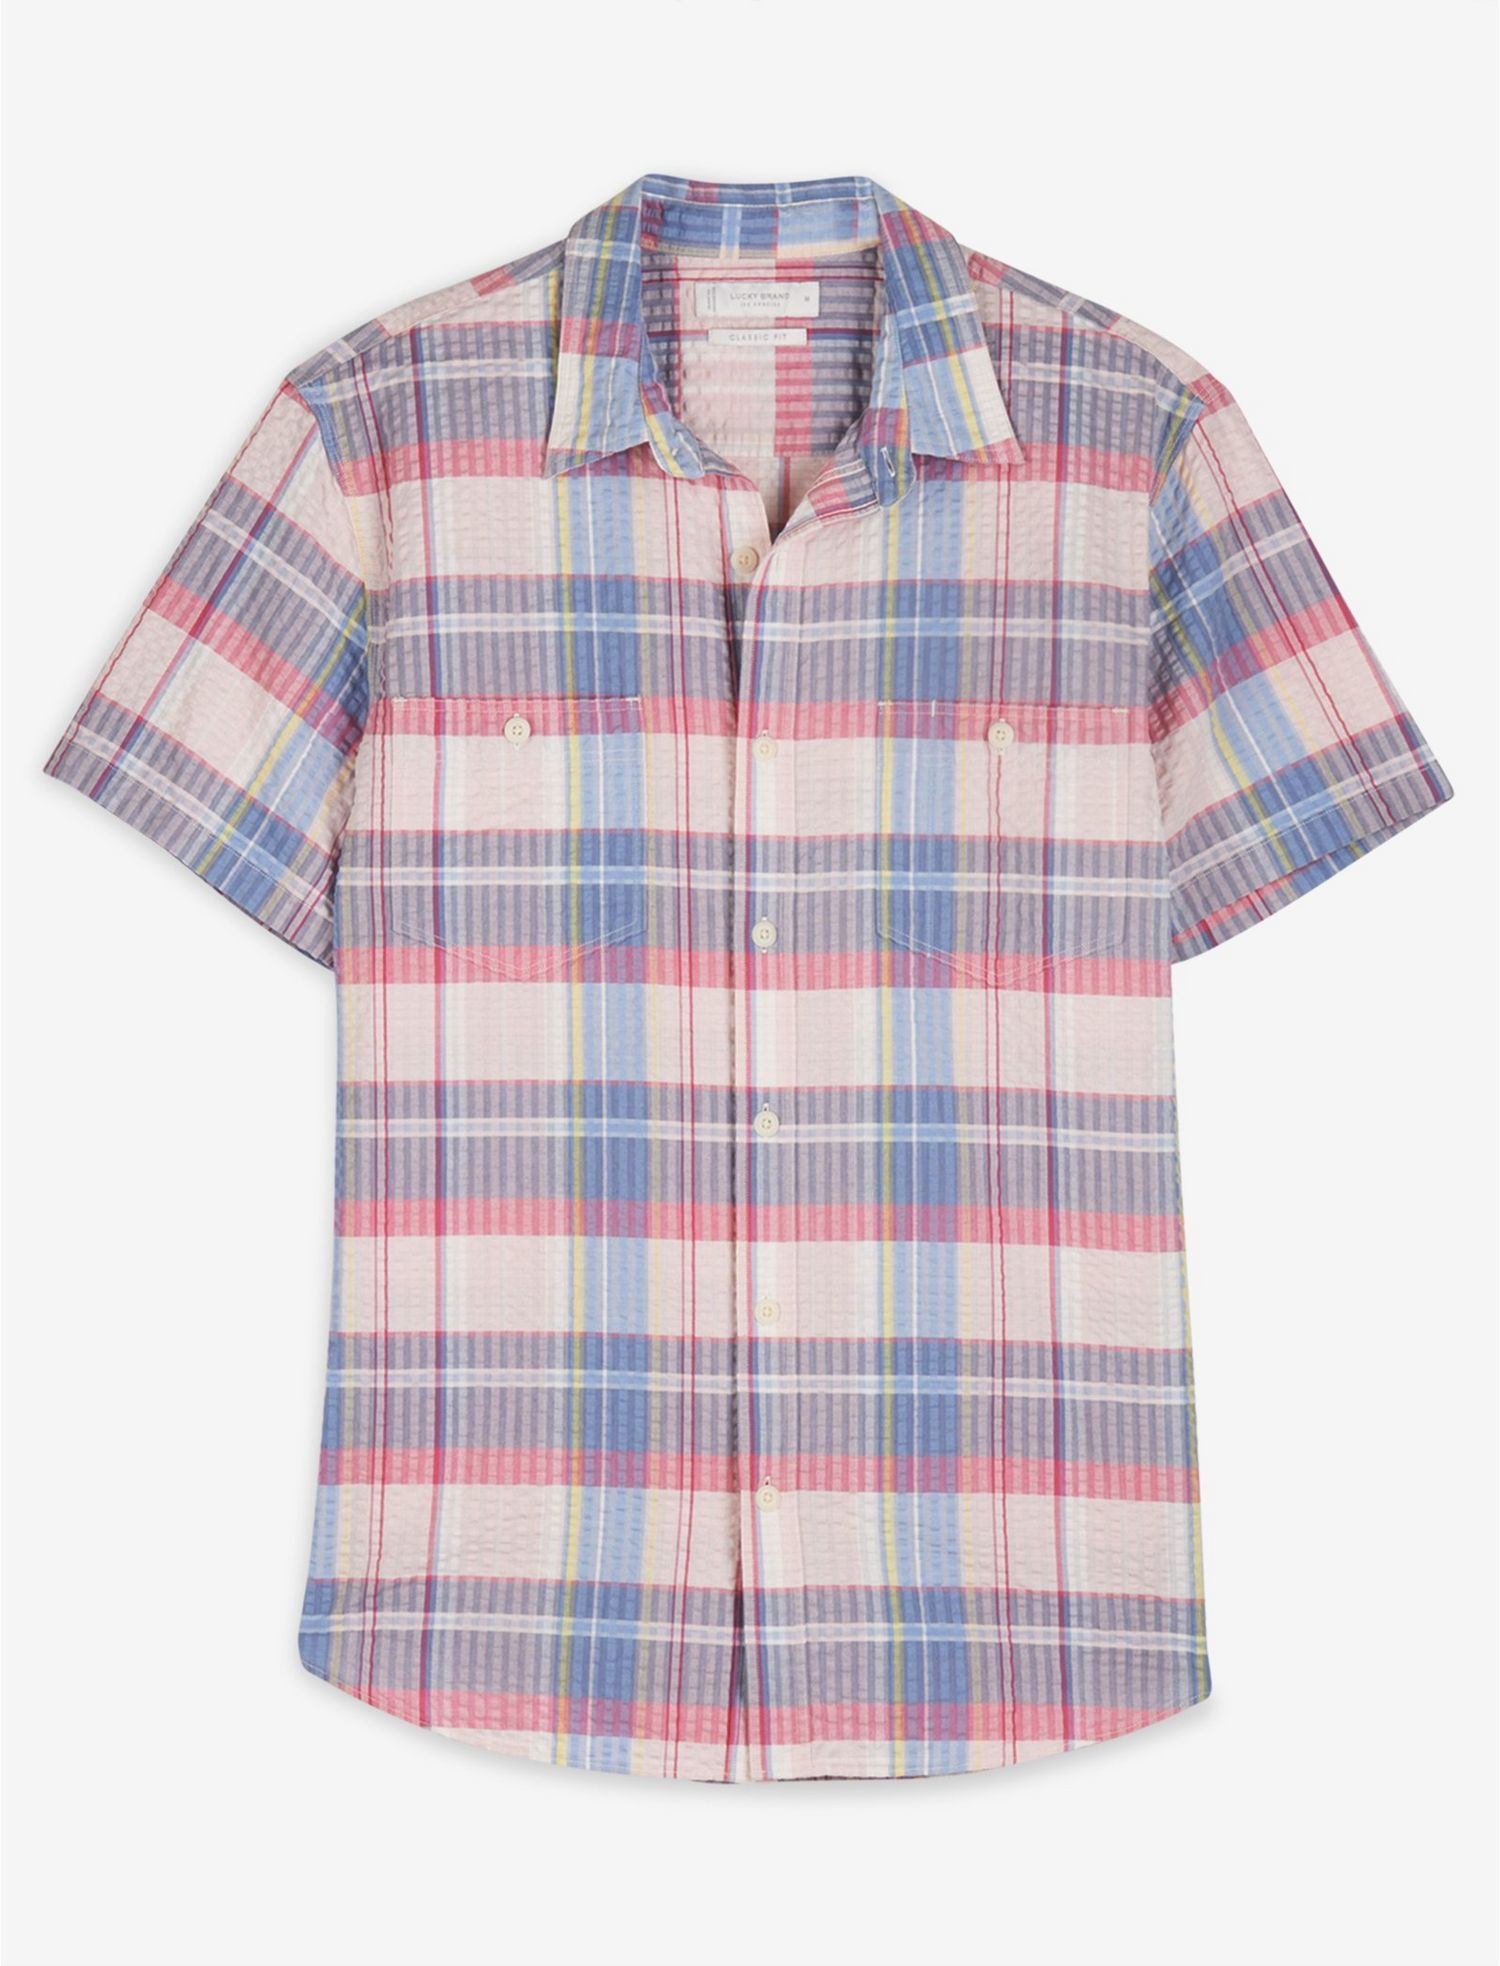 1960s – 70s Mens Shirts- Disco Shirts, Hippie Shirts Lucky Brand Short Sleeve Jay Bird Workwear Shirt In Pink Plaid Size Small $35.00 AT vintagedancer.com